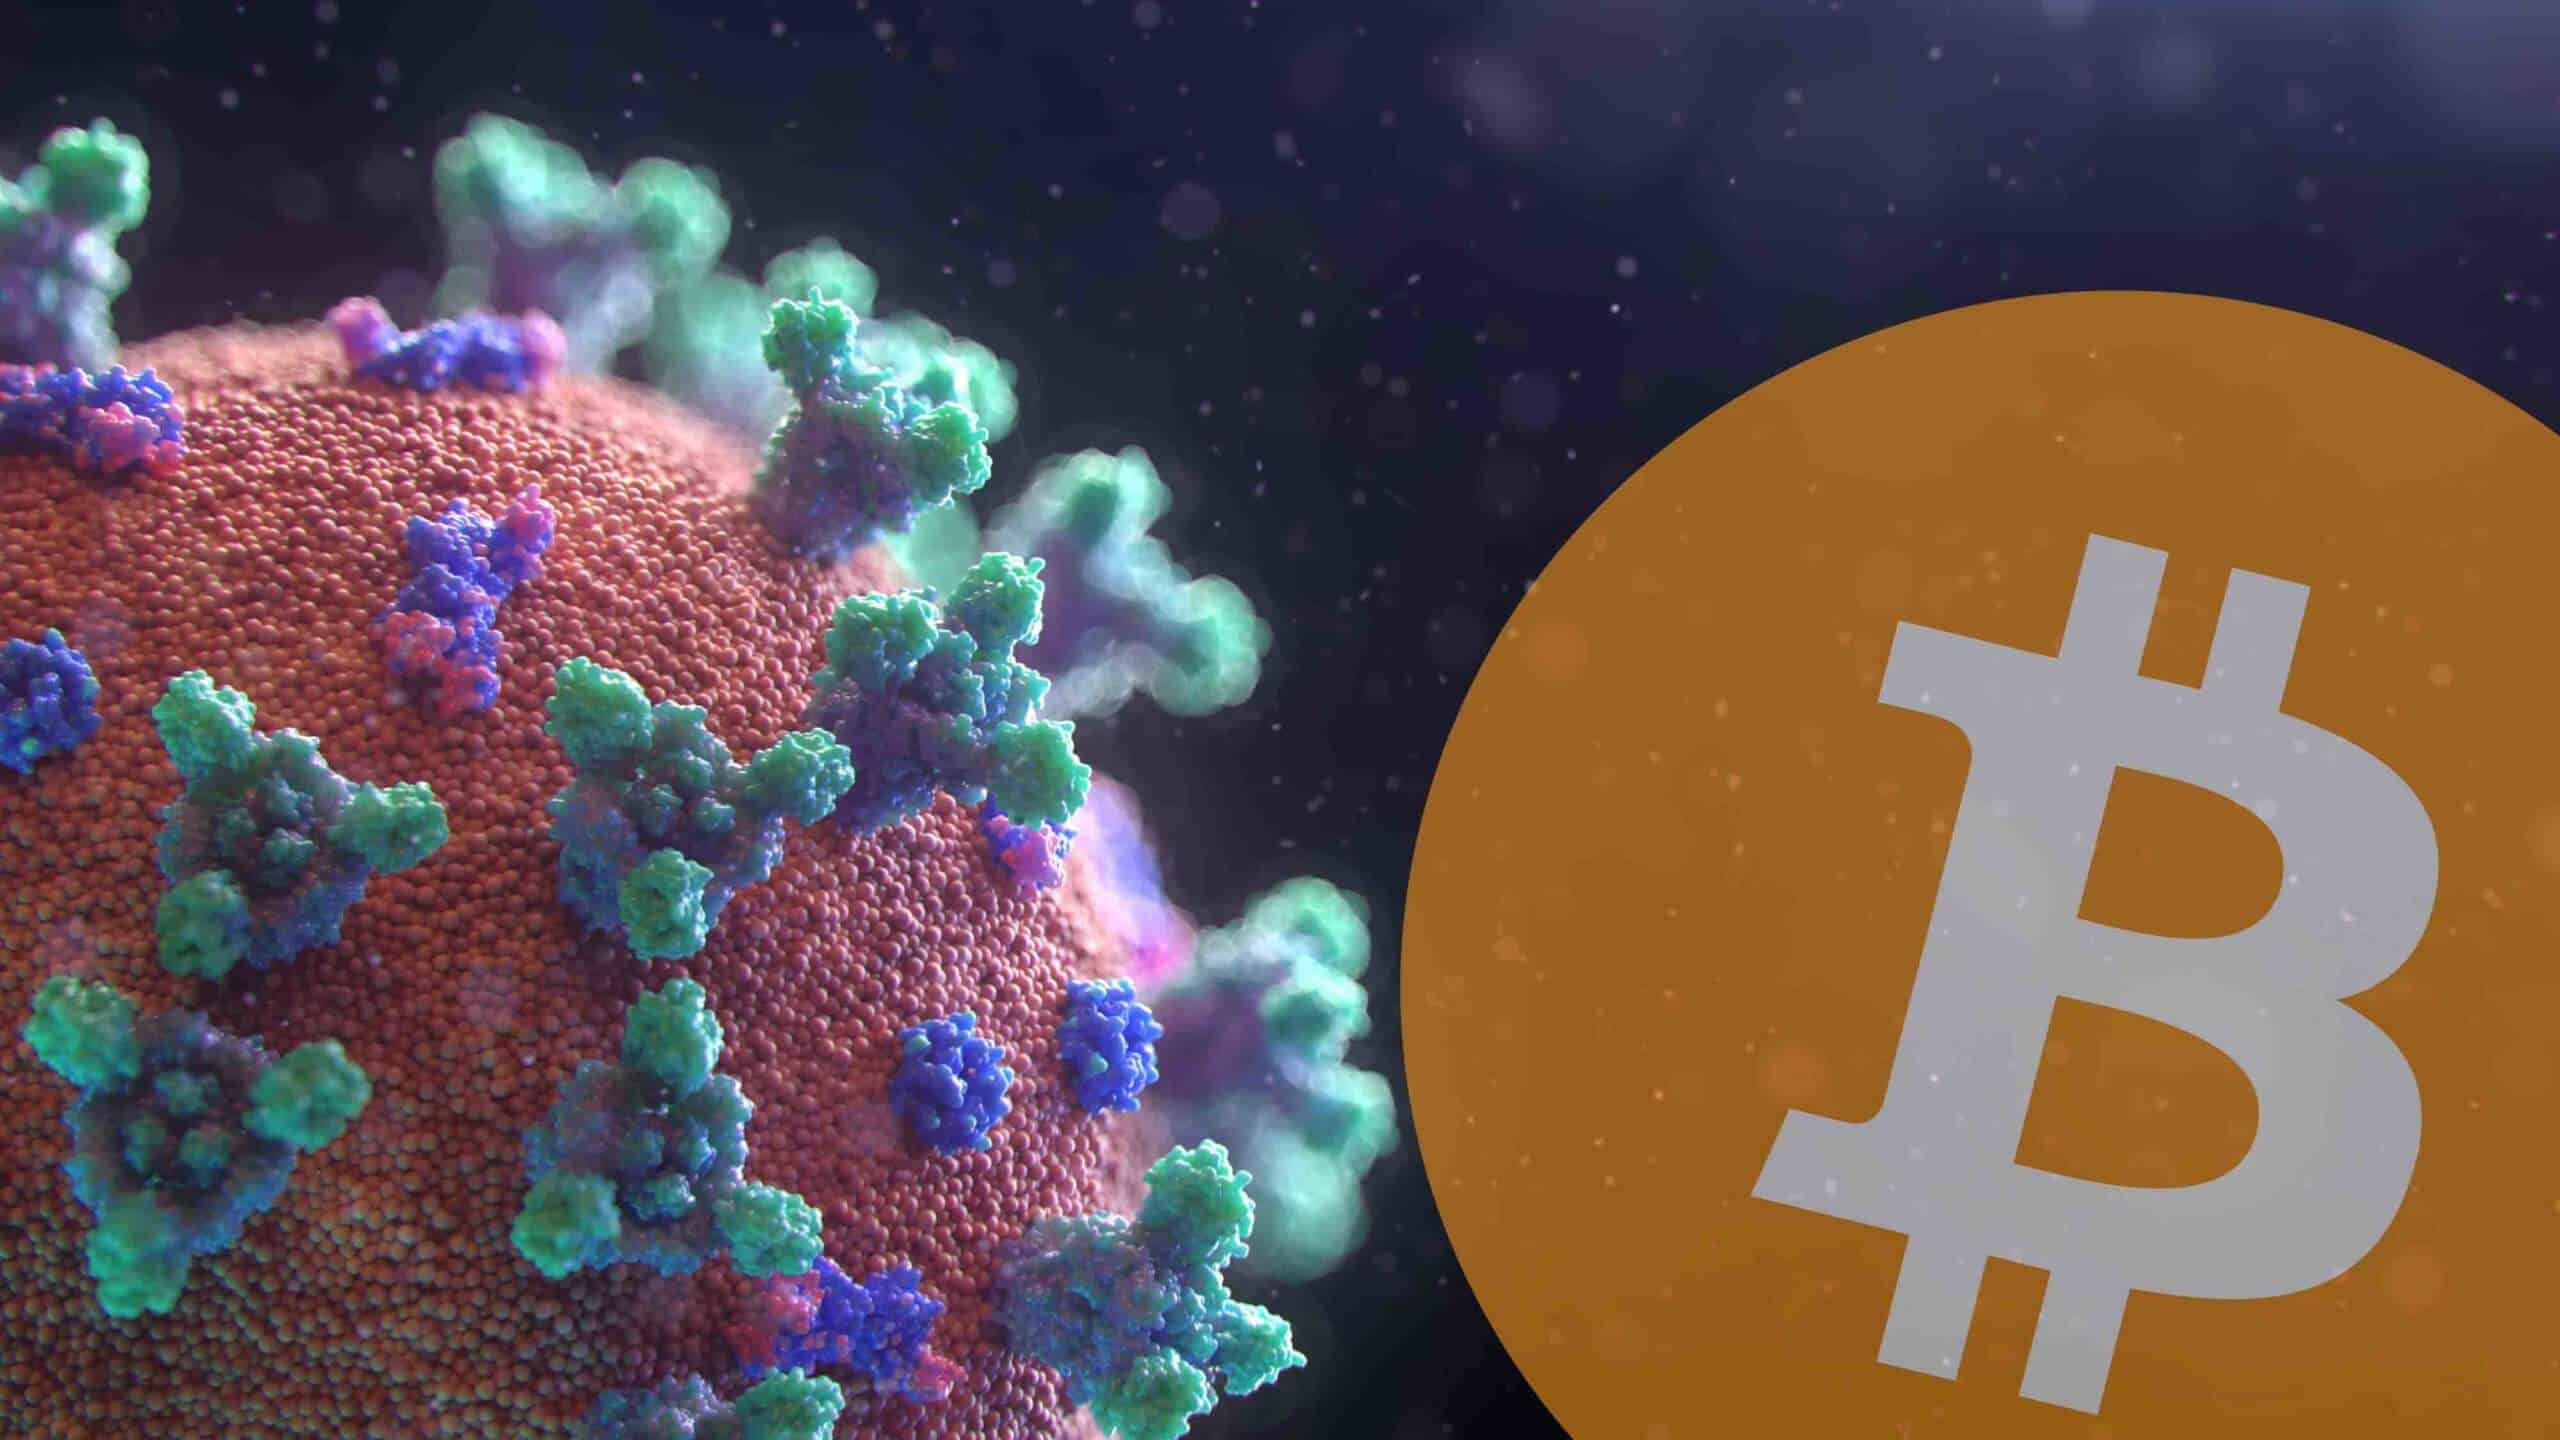 Virus and Bitcoin logo.